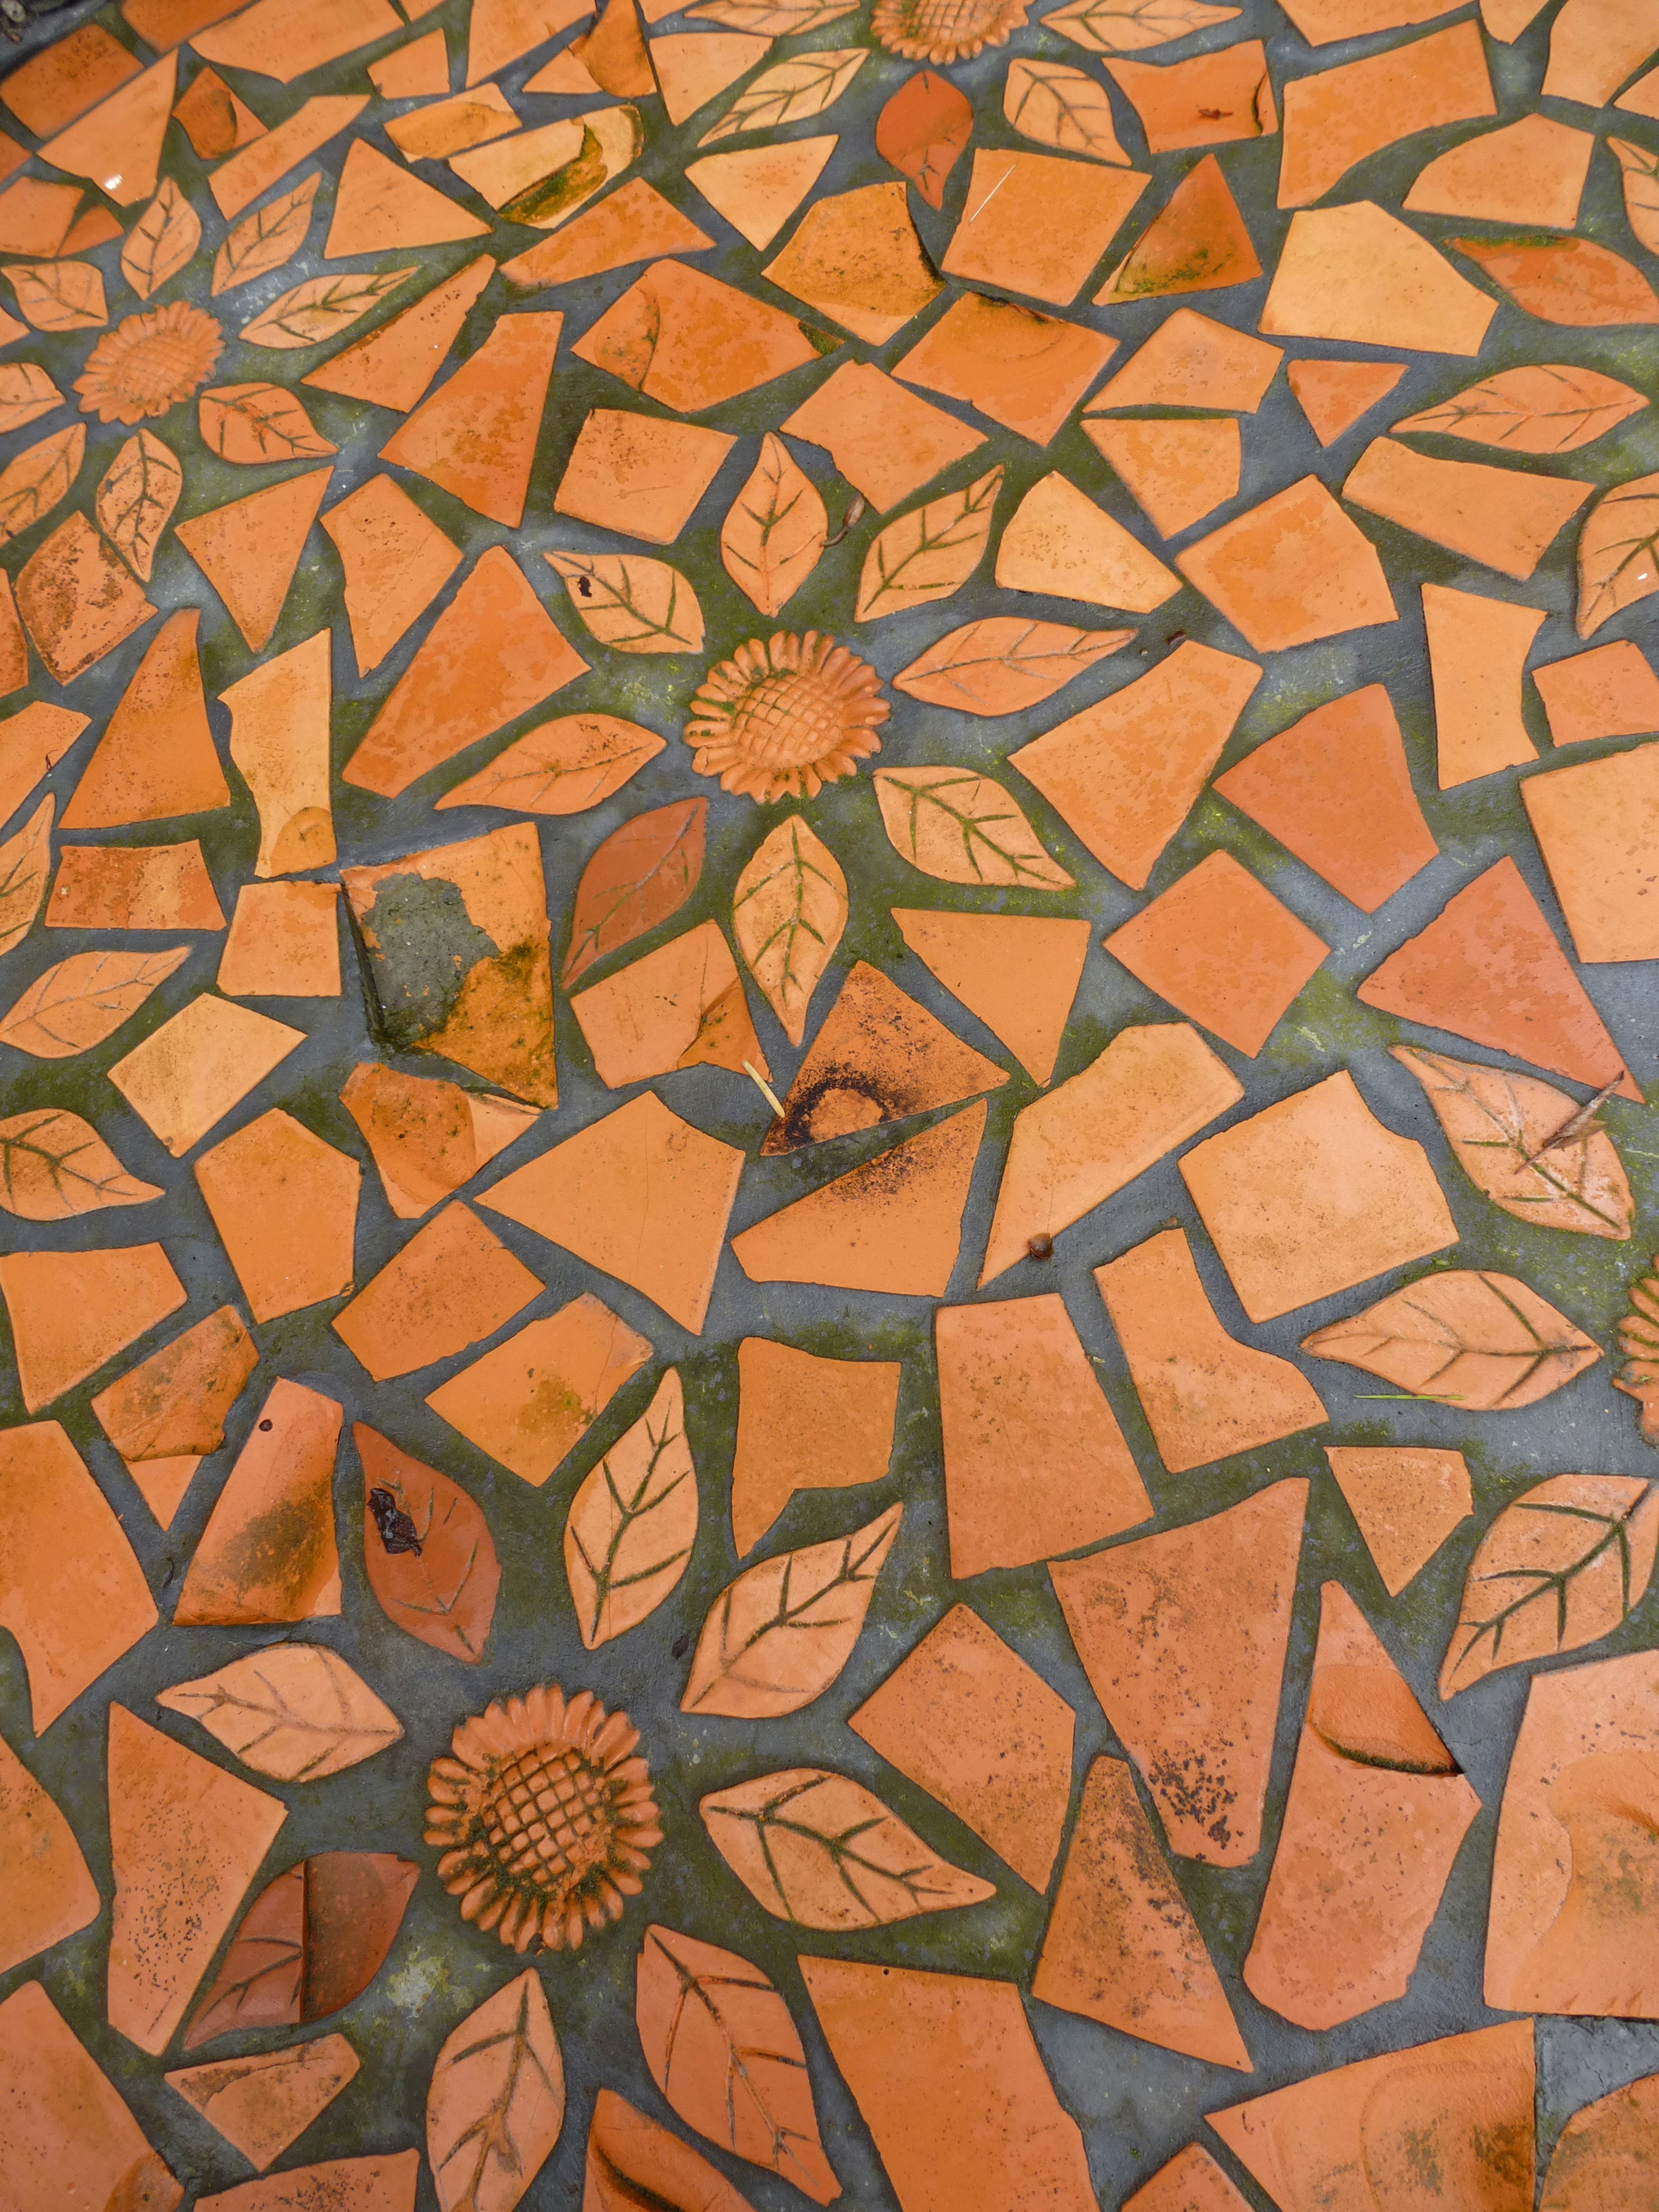 Crazy paving background texture and pattern with decorative floral inlay in a rich brown color, overhead view of the floor